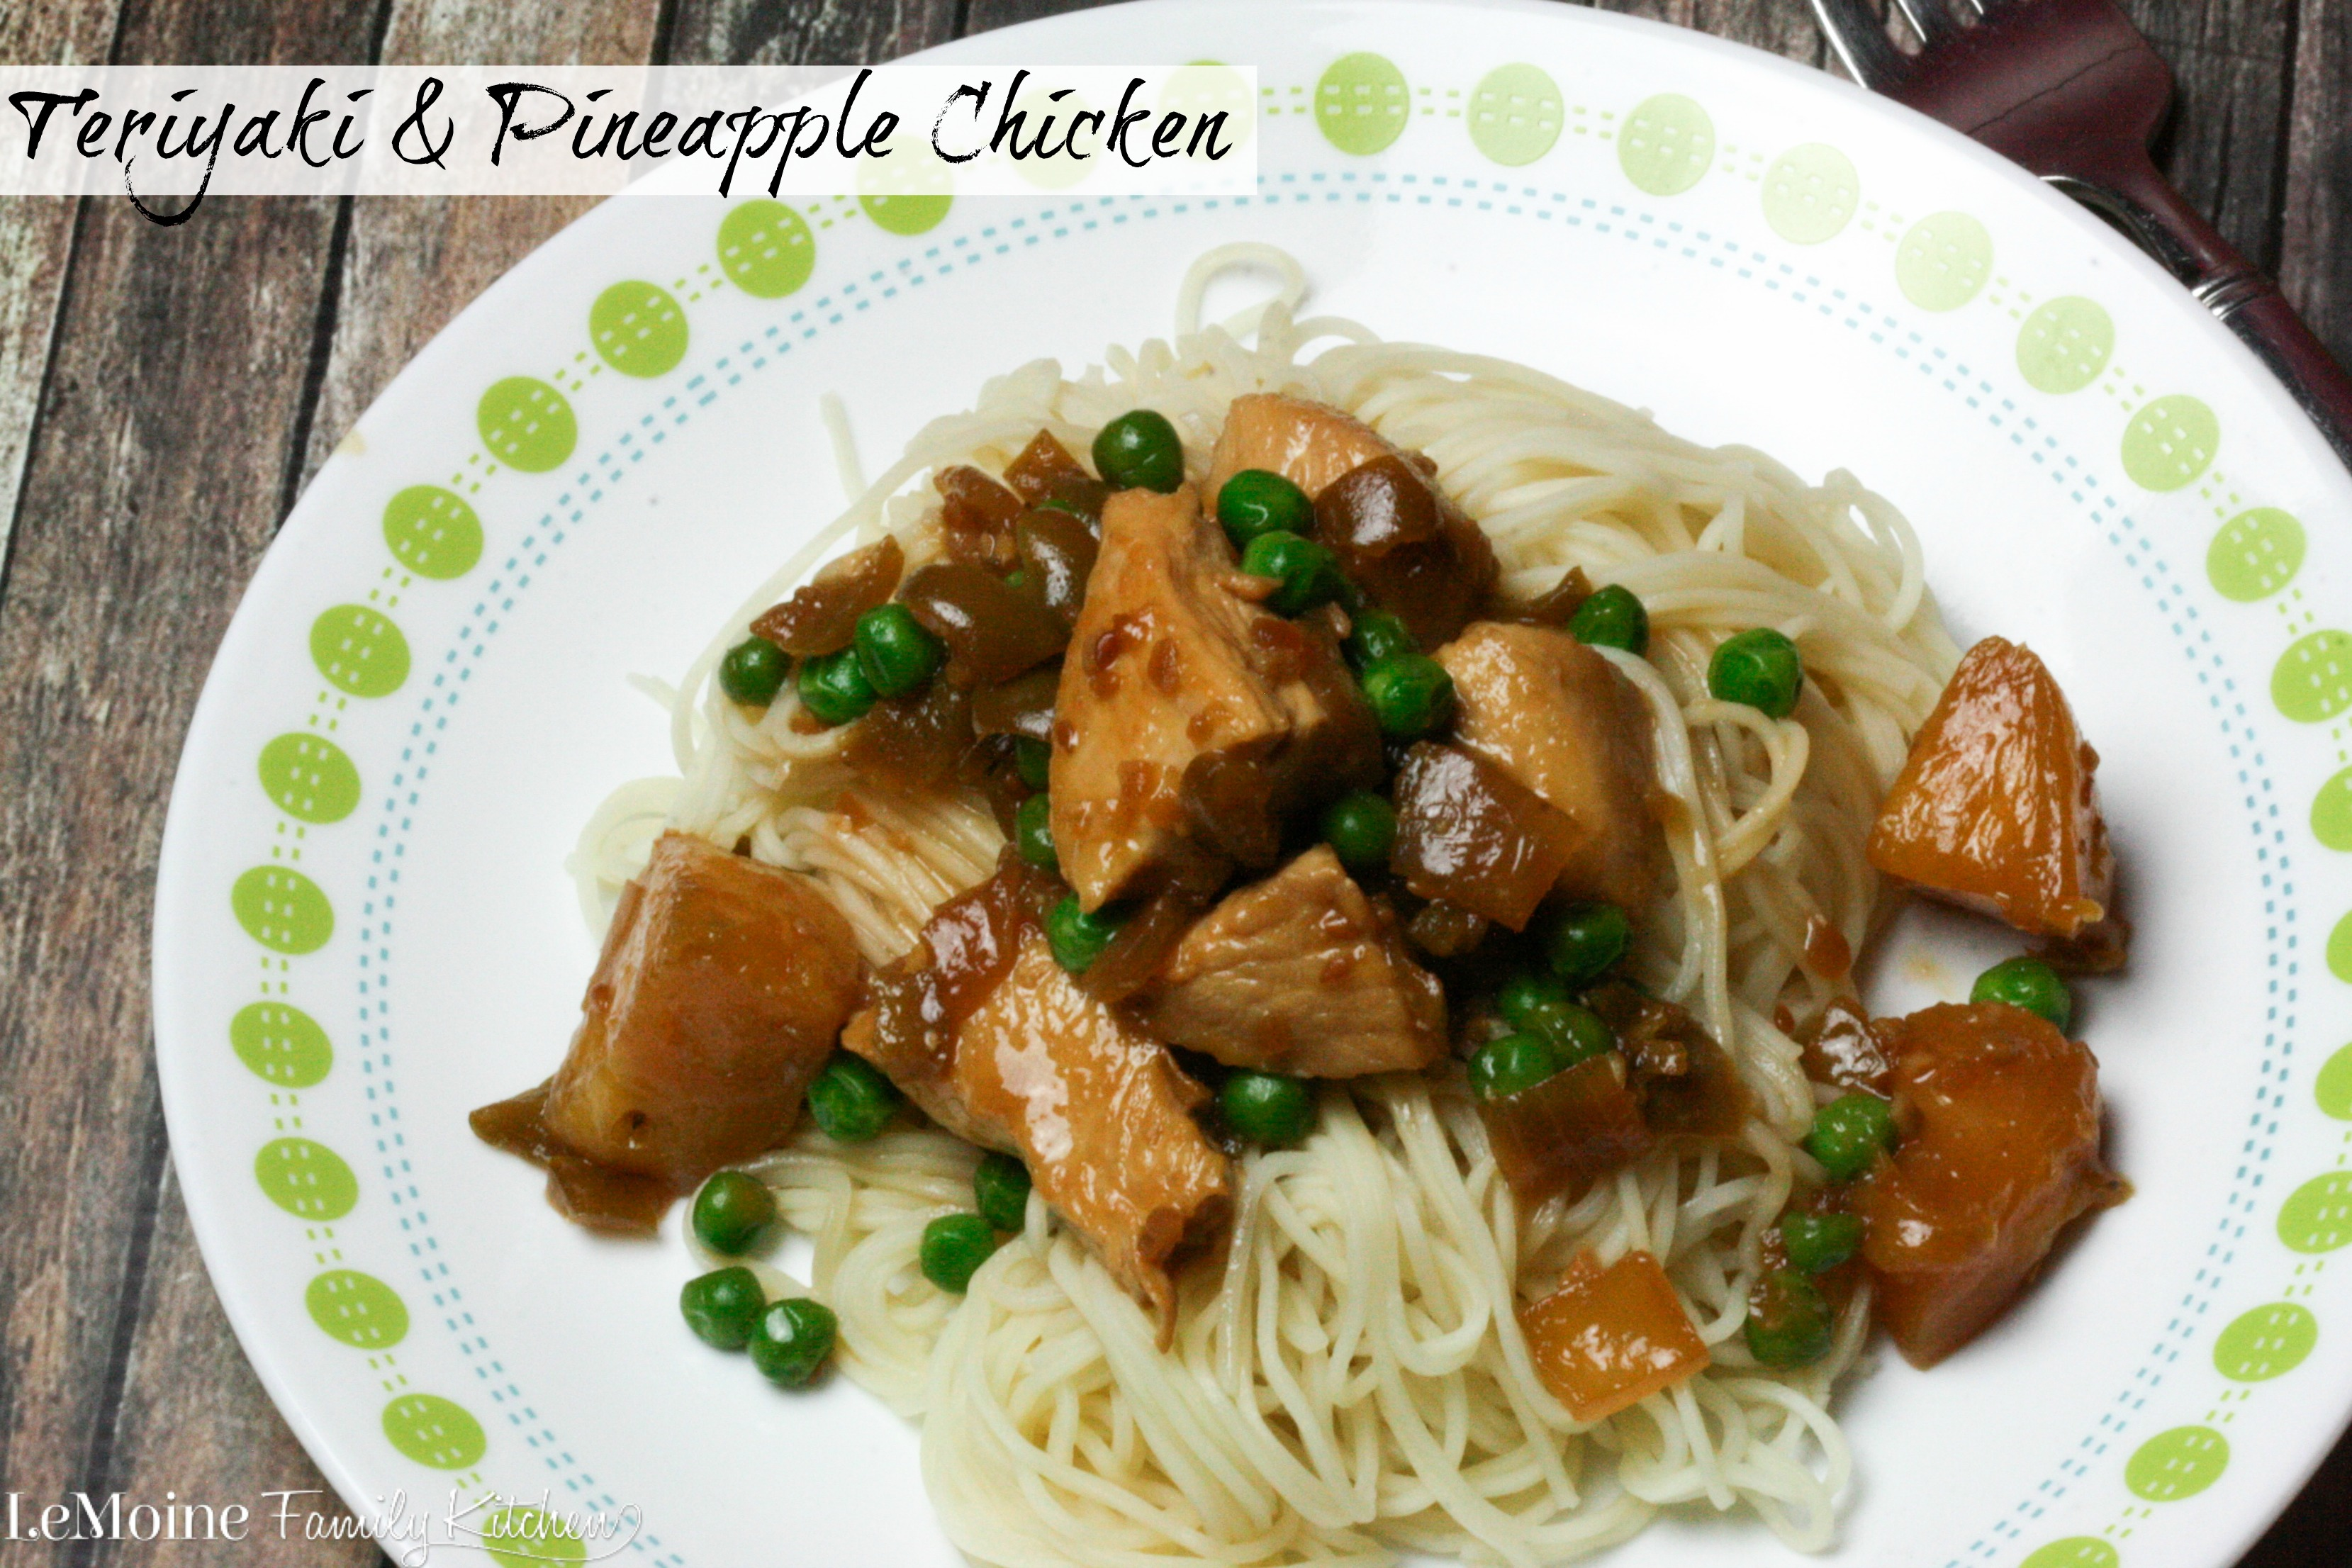 Teriyaki & Pineapple Chicken | LeMoine Family Kitchen. A really tasty and simple weeknight meal.